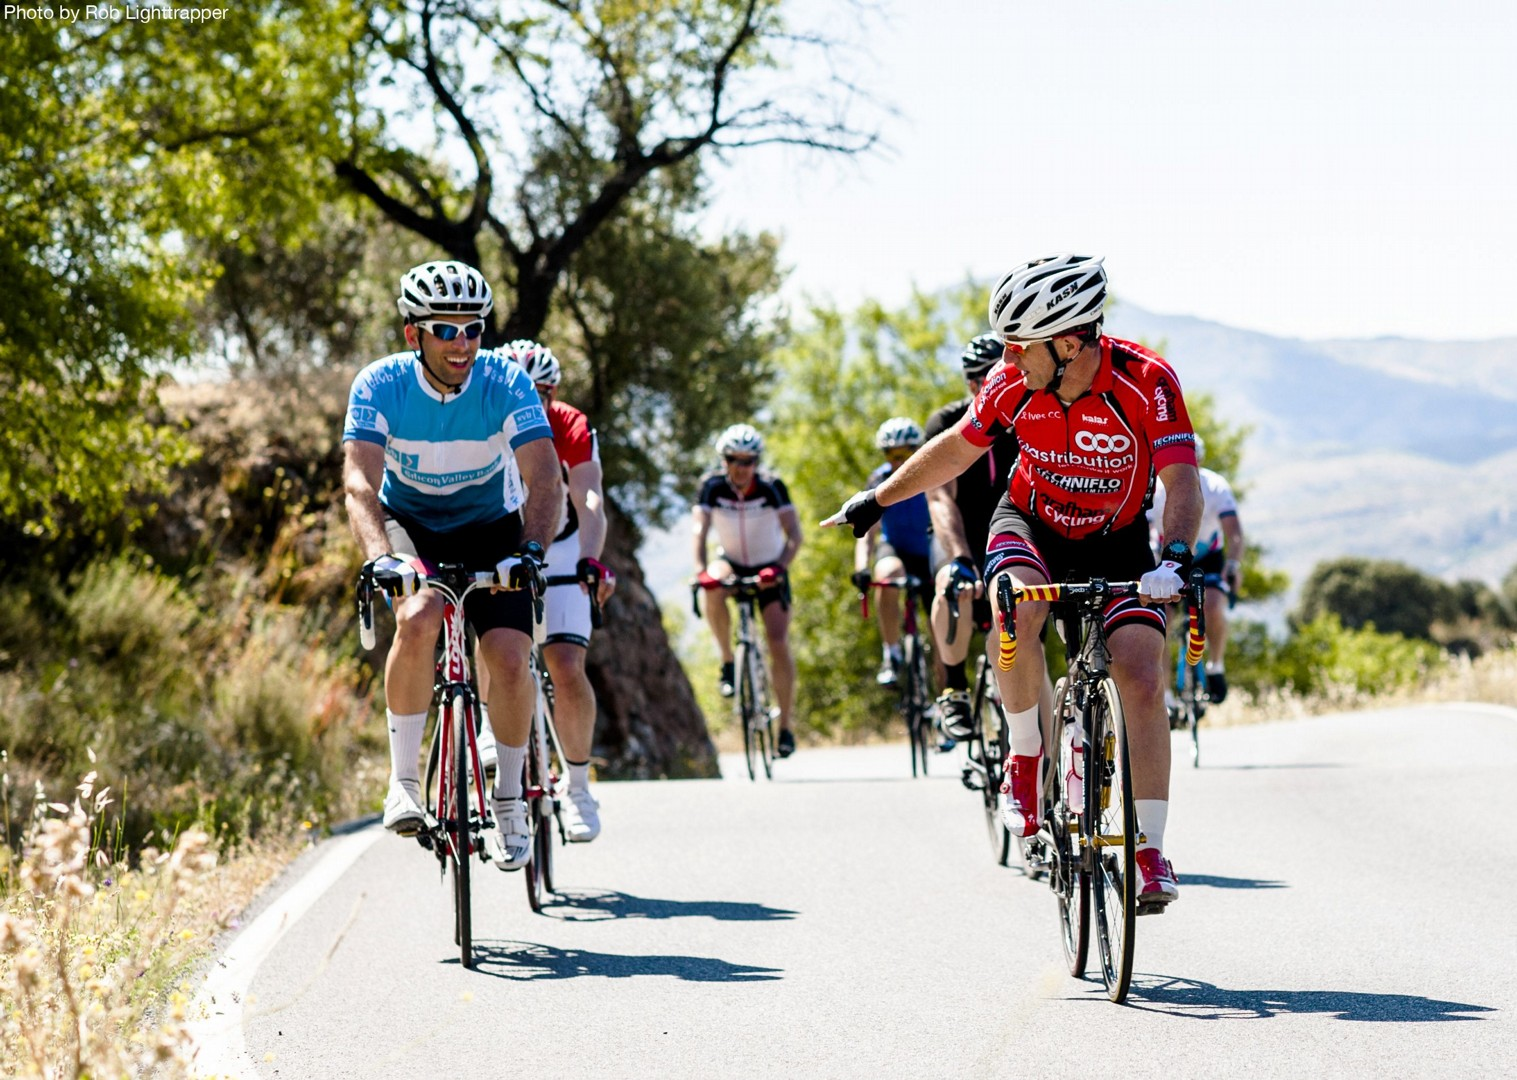 ronda-southern-spain-andalucia-cape-to-cape-traverse-guided-road-cycling-holiday.jpg - Southern Spain - Andalucia - Cape to Cape Traverse - Guided Road Cycling Holiday - Road Cycling